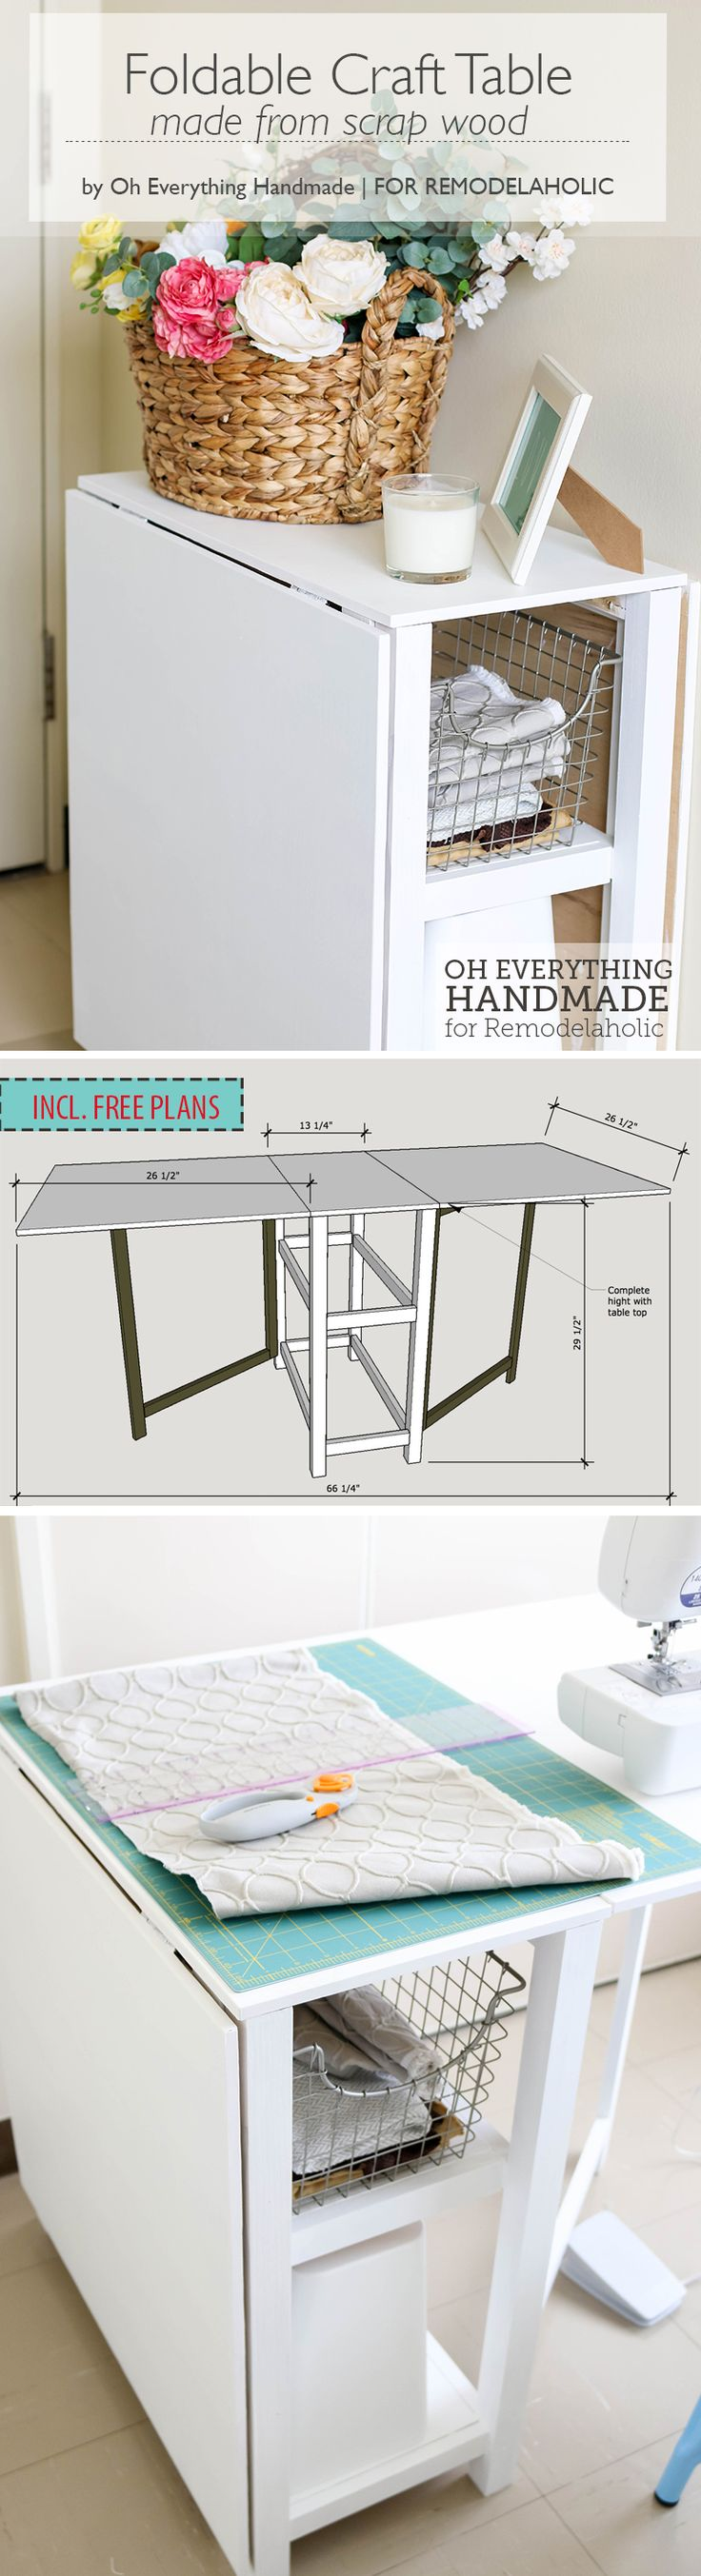 Make your small craft area work with this space-conscious DIY foldable  craft table,